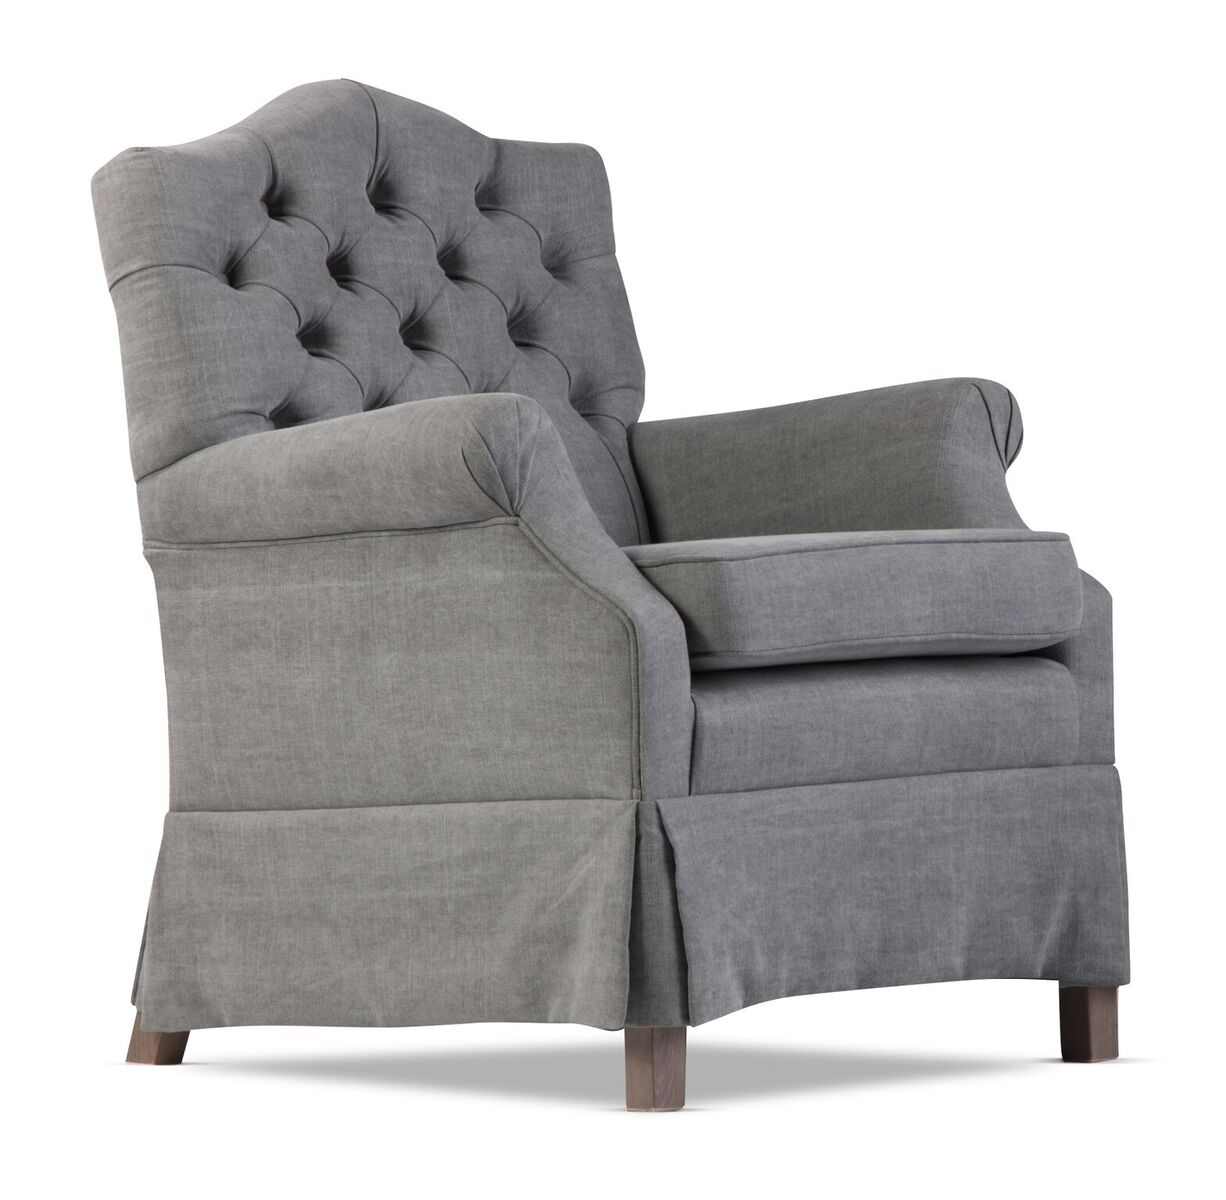 Olav Home Fauteuil Vince 't Maaseiker Woonhuys